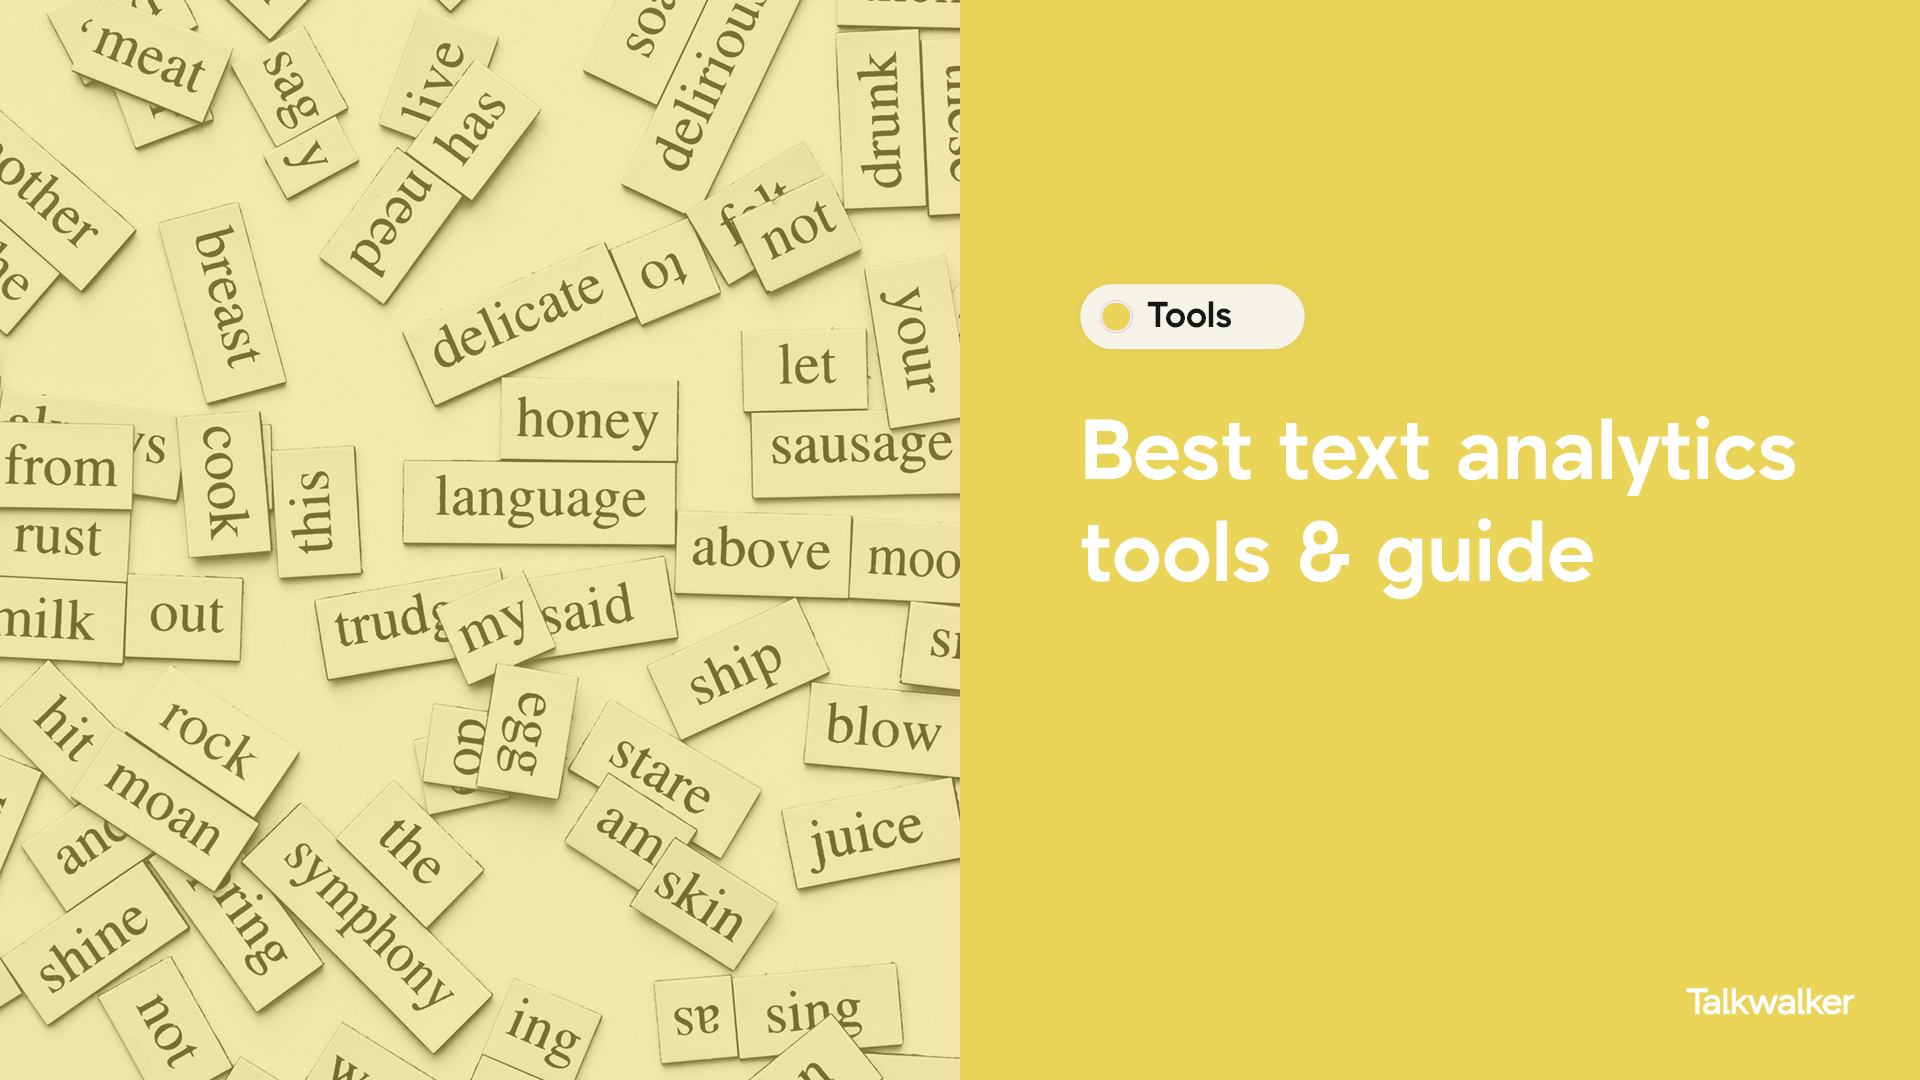 Best text analytics tools and guide